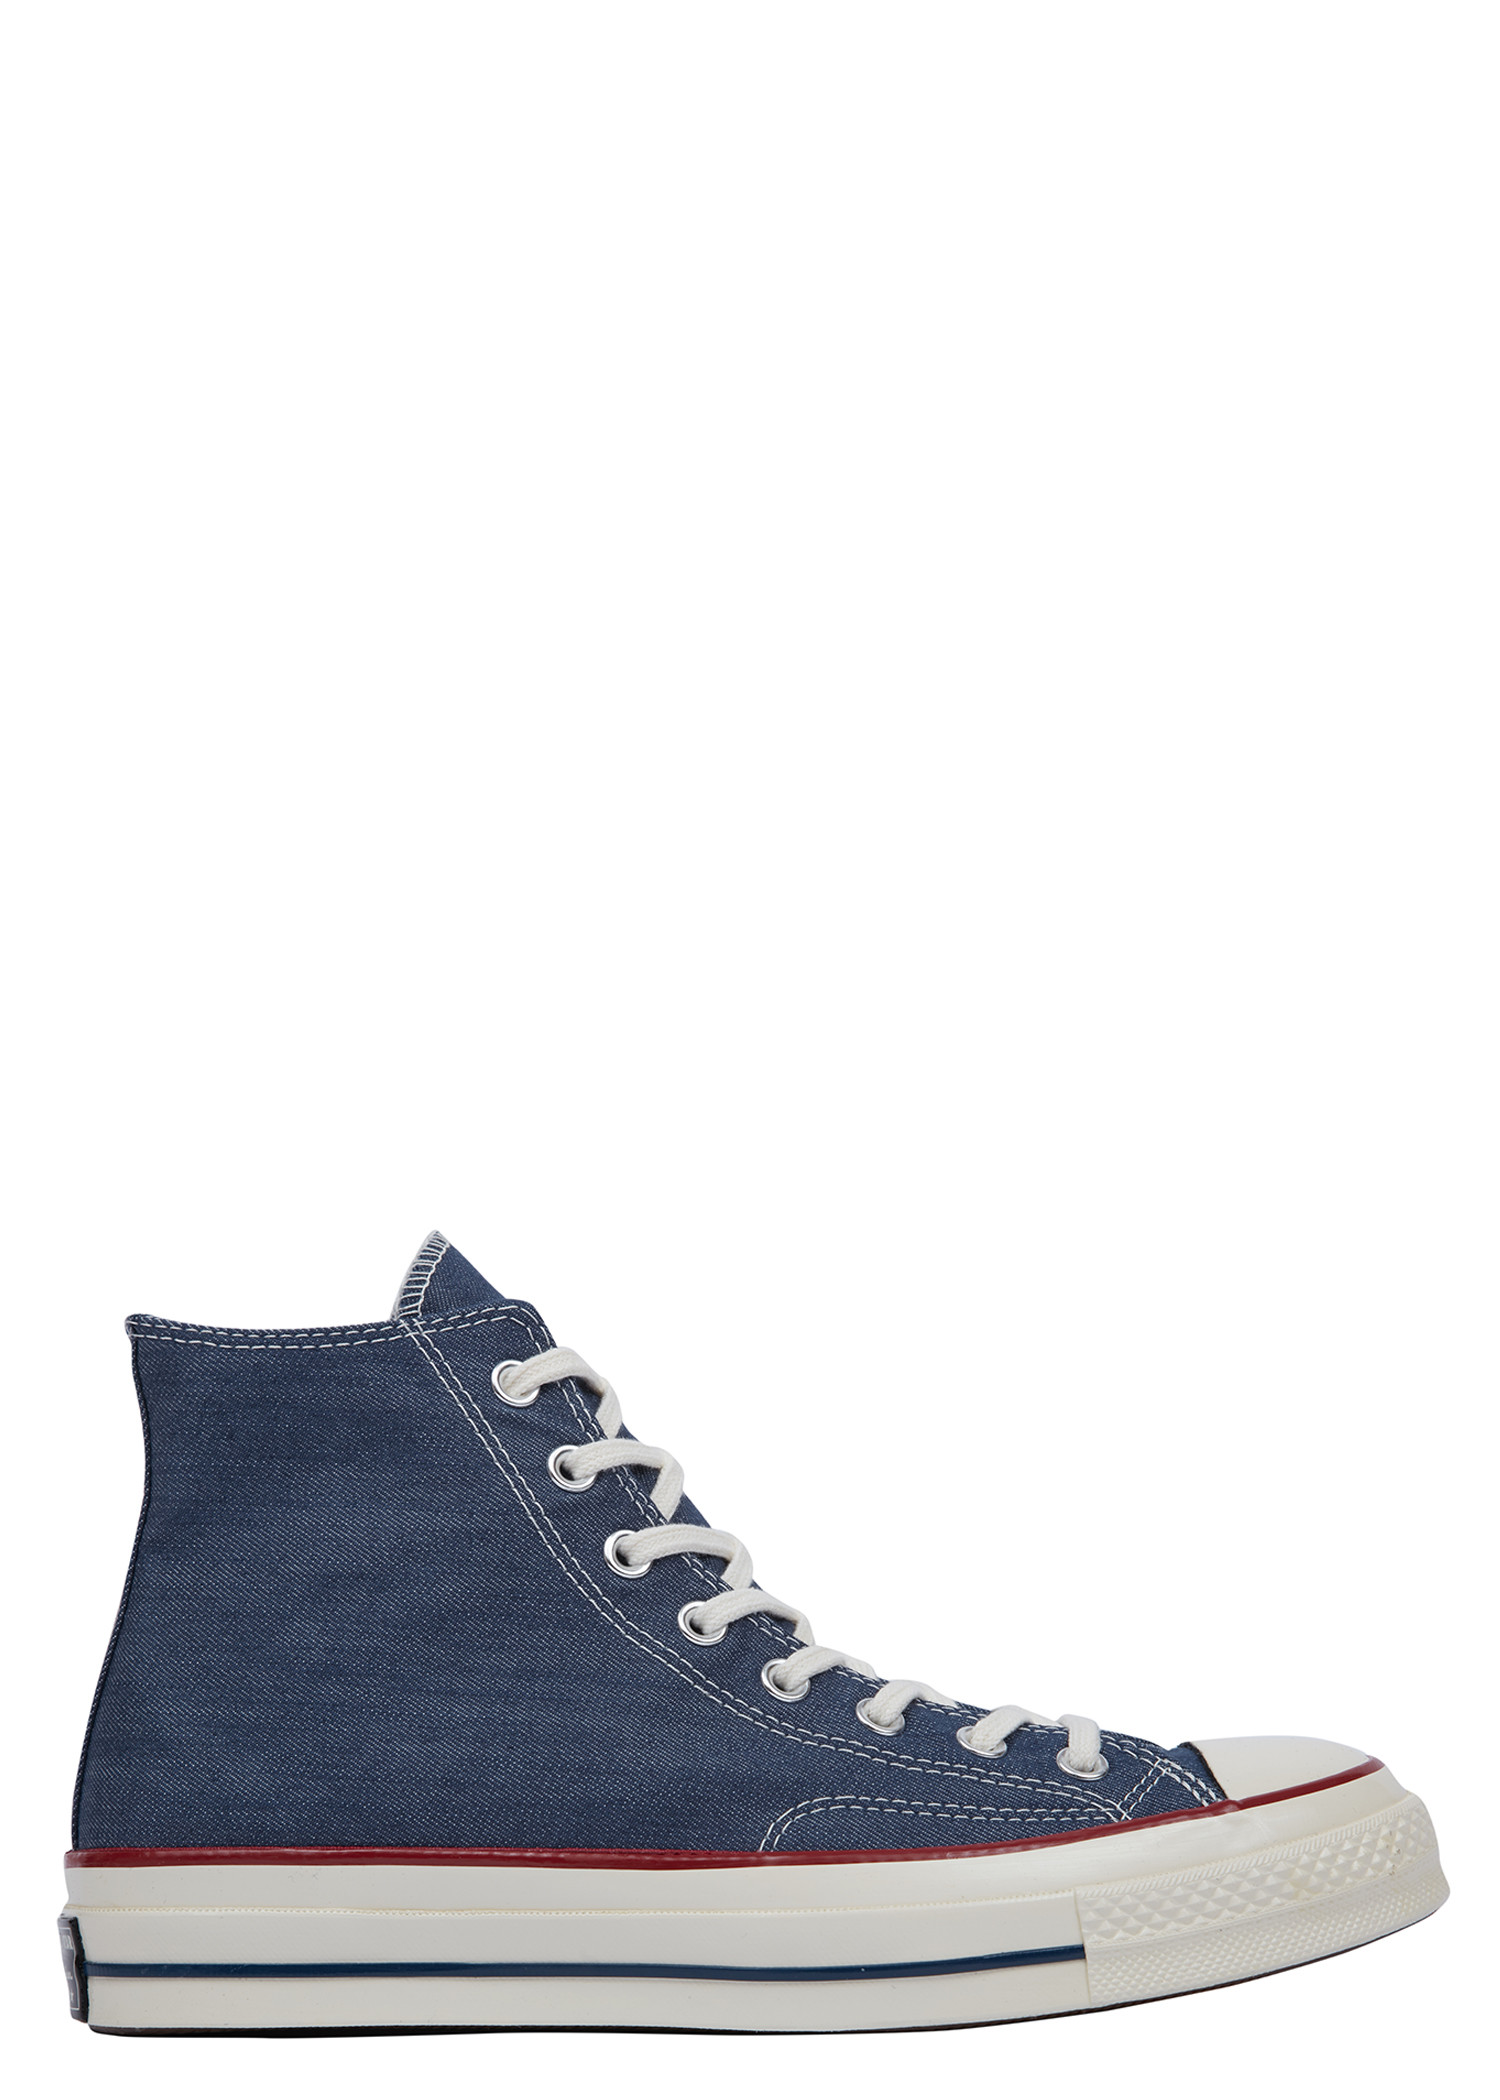 Converse Chuck Taylor All Star´70 In Insignia Blue/garnet/egret